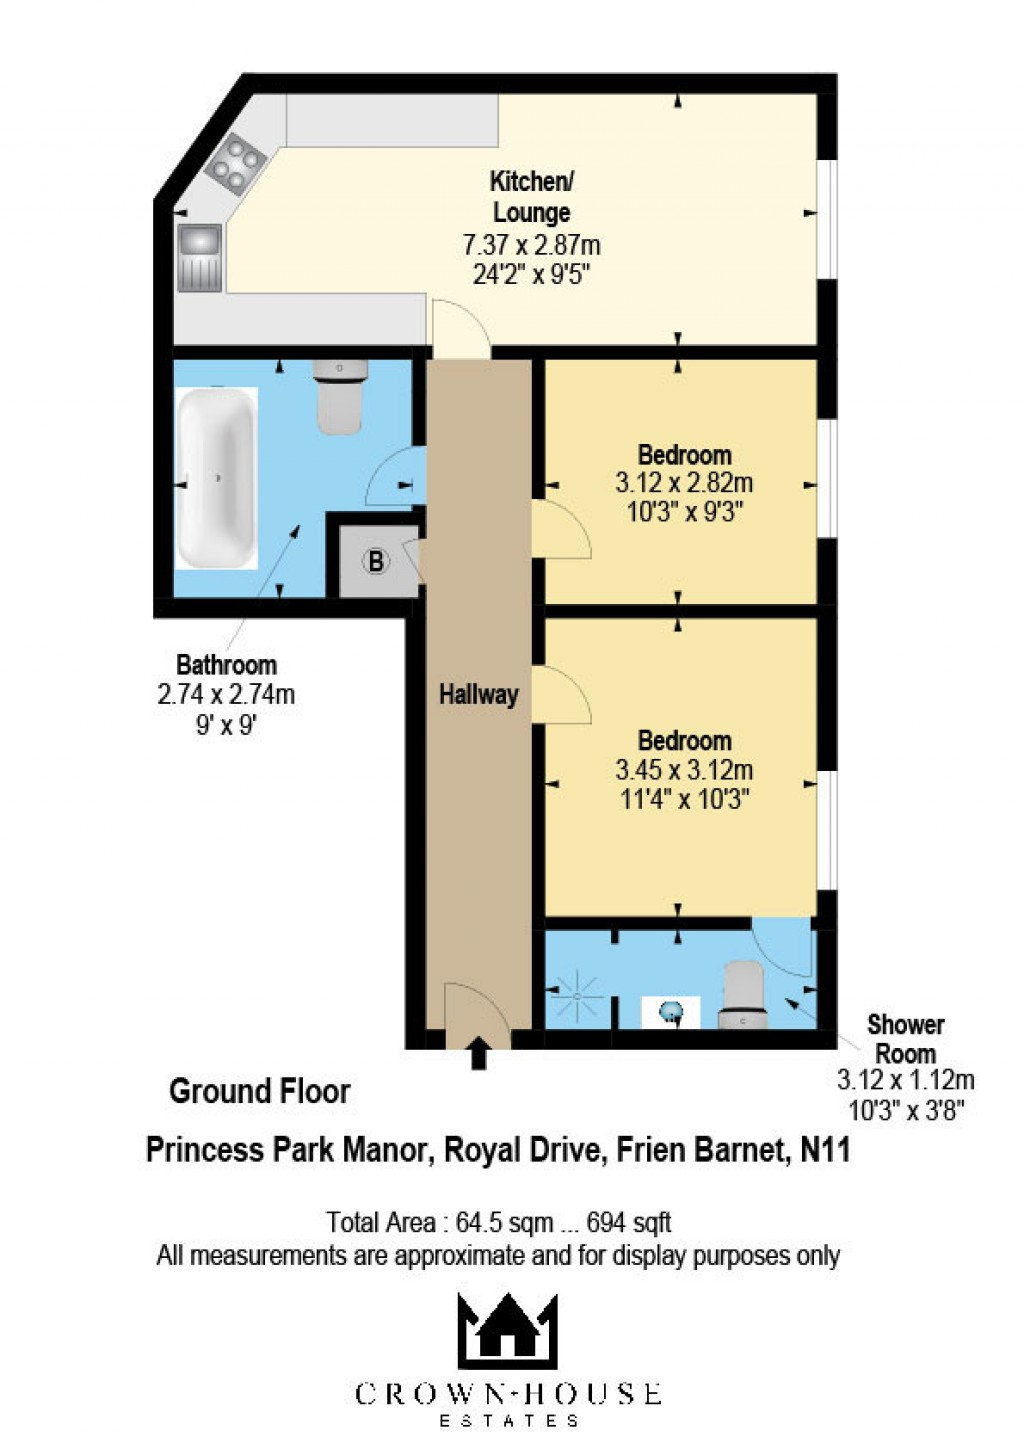 Floorplans For Princess Park Manor East Wing, Royal Drive, London, N11